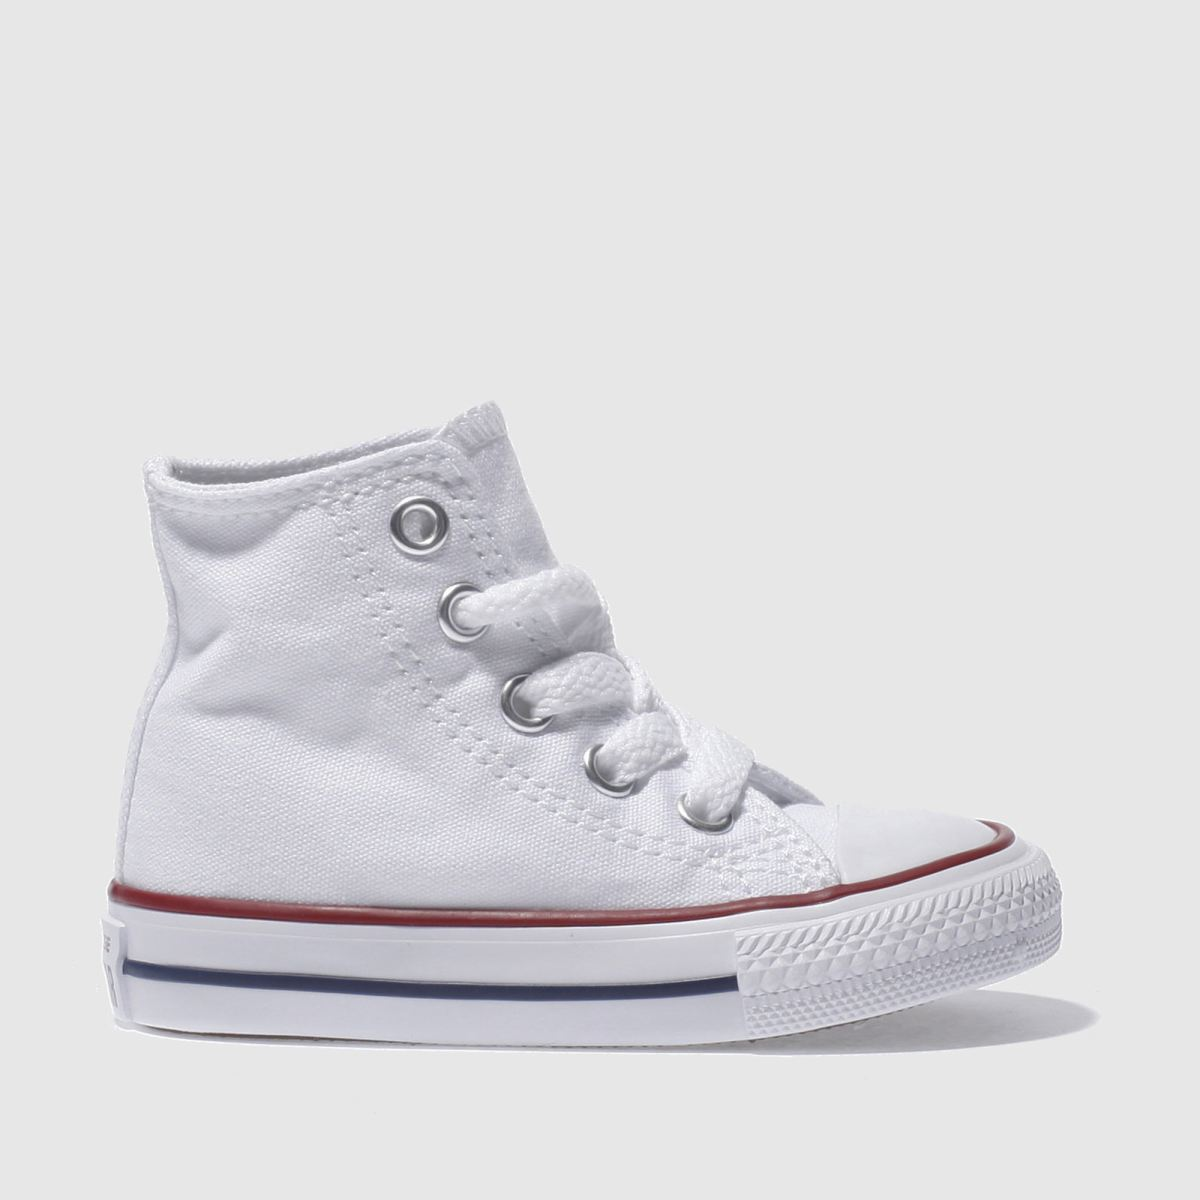 converse white all star hi Toddler Trainers